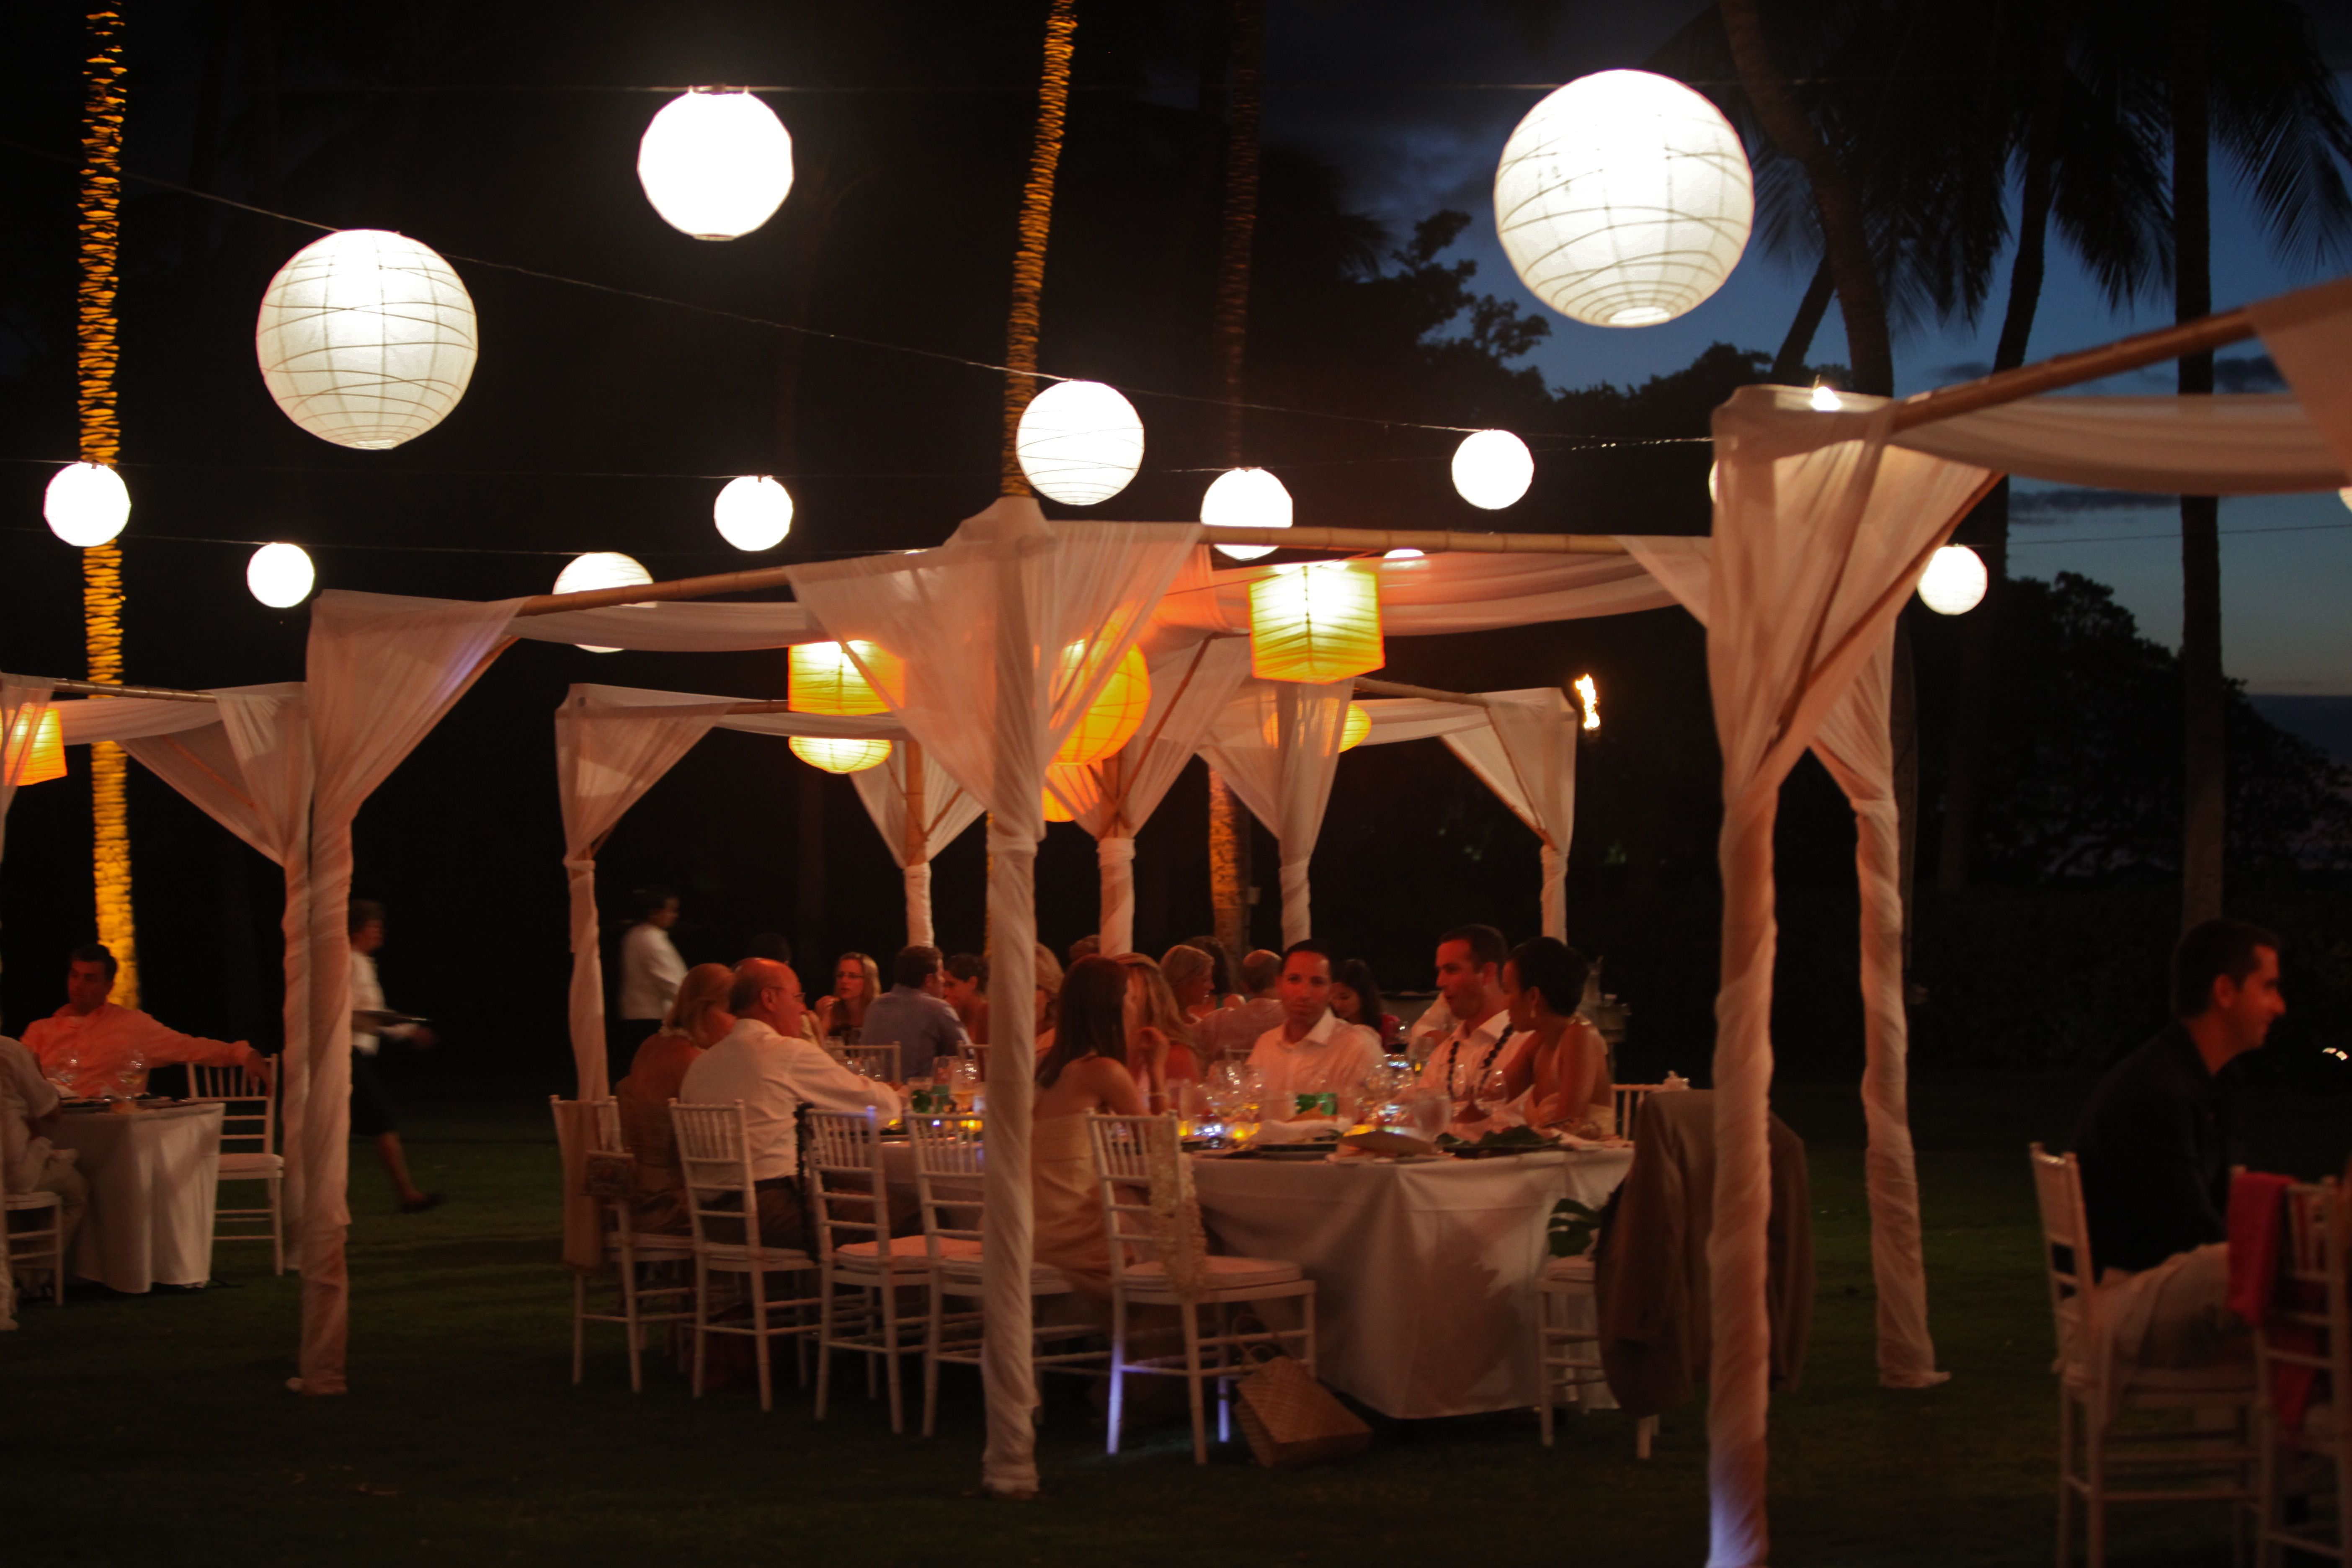 Love these dining tents with lanterns overhead